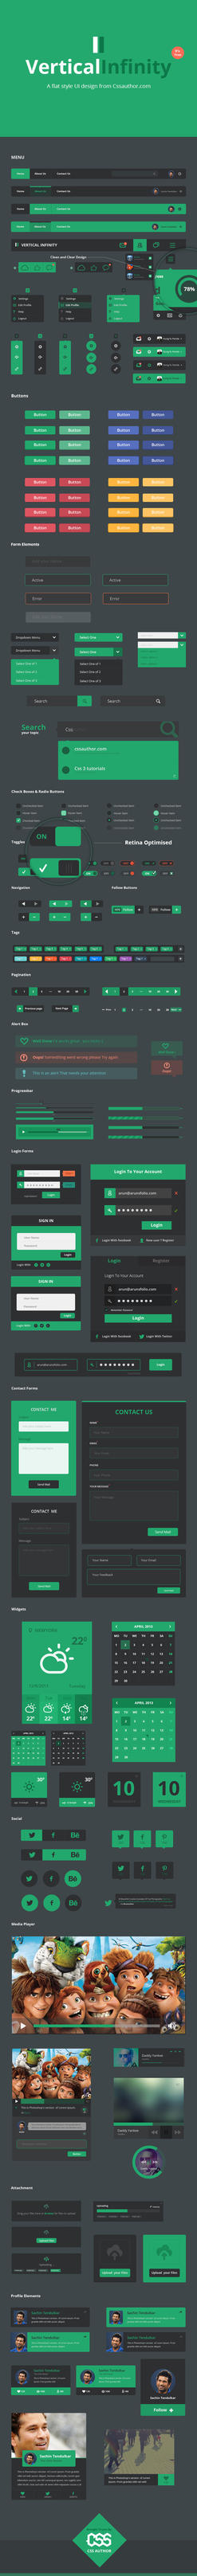 Vertical Infinity - A Mega Flat Style UI Kit PSD by cssauthor